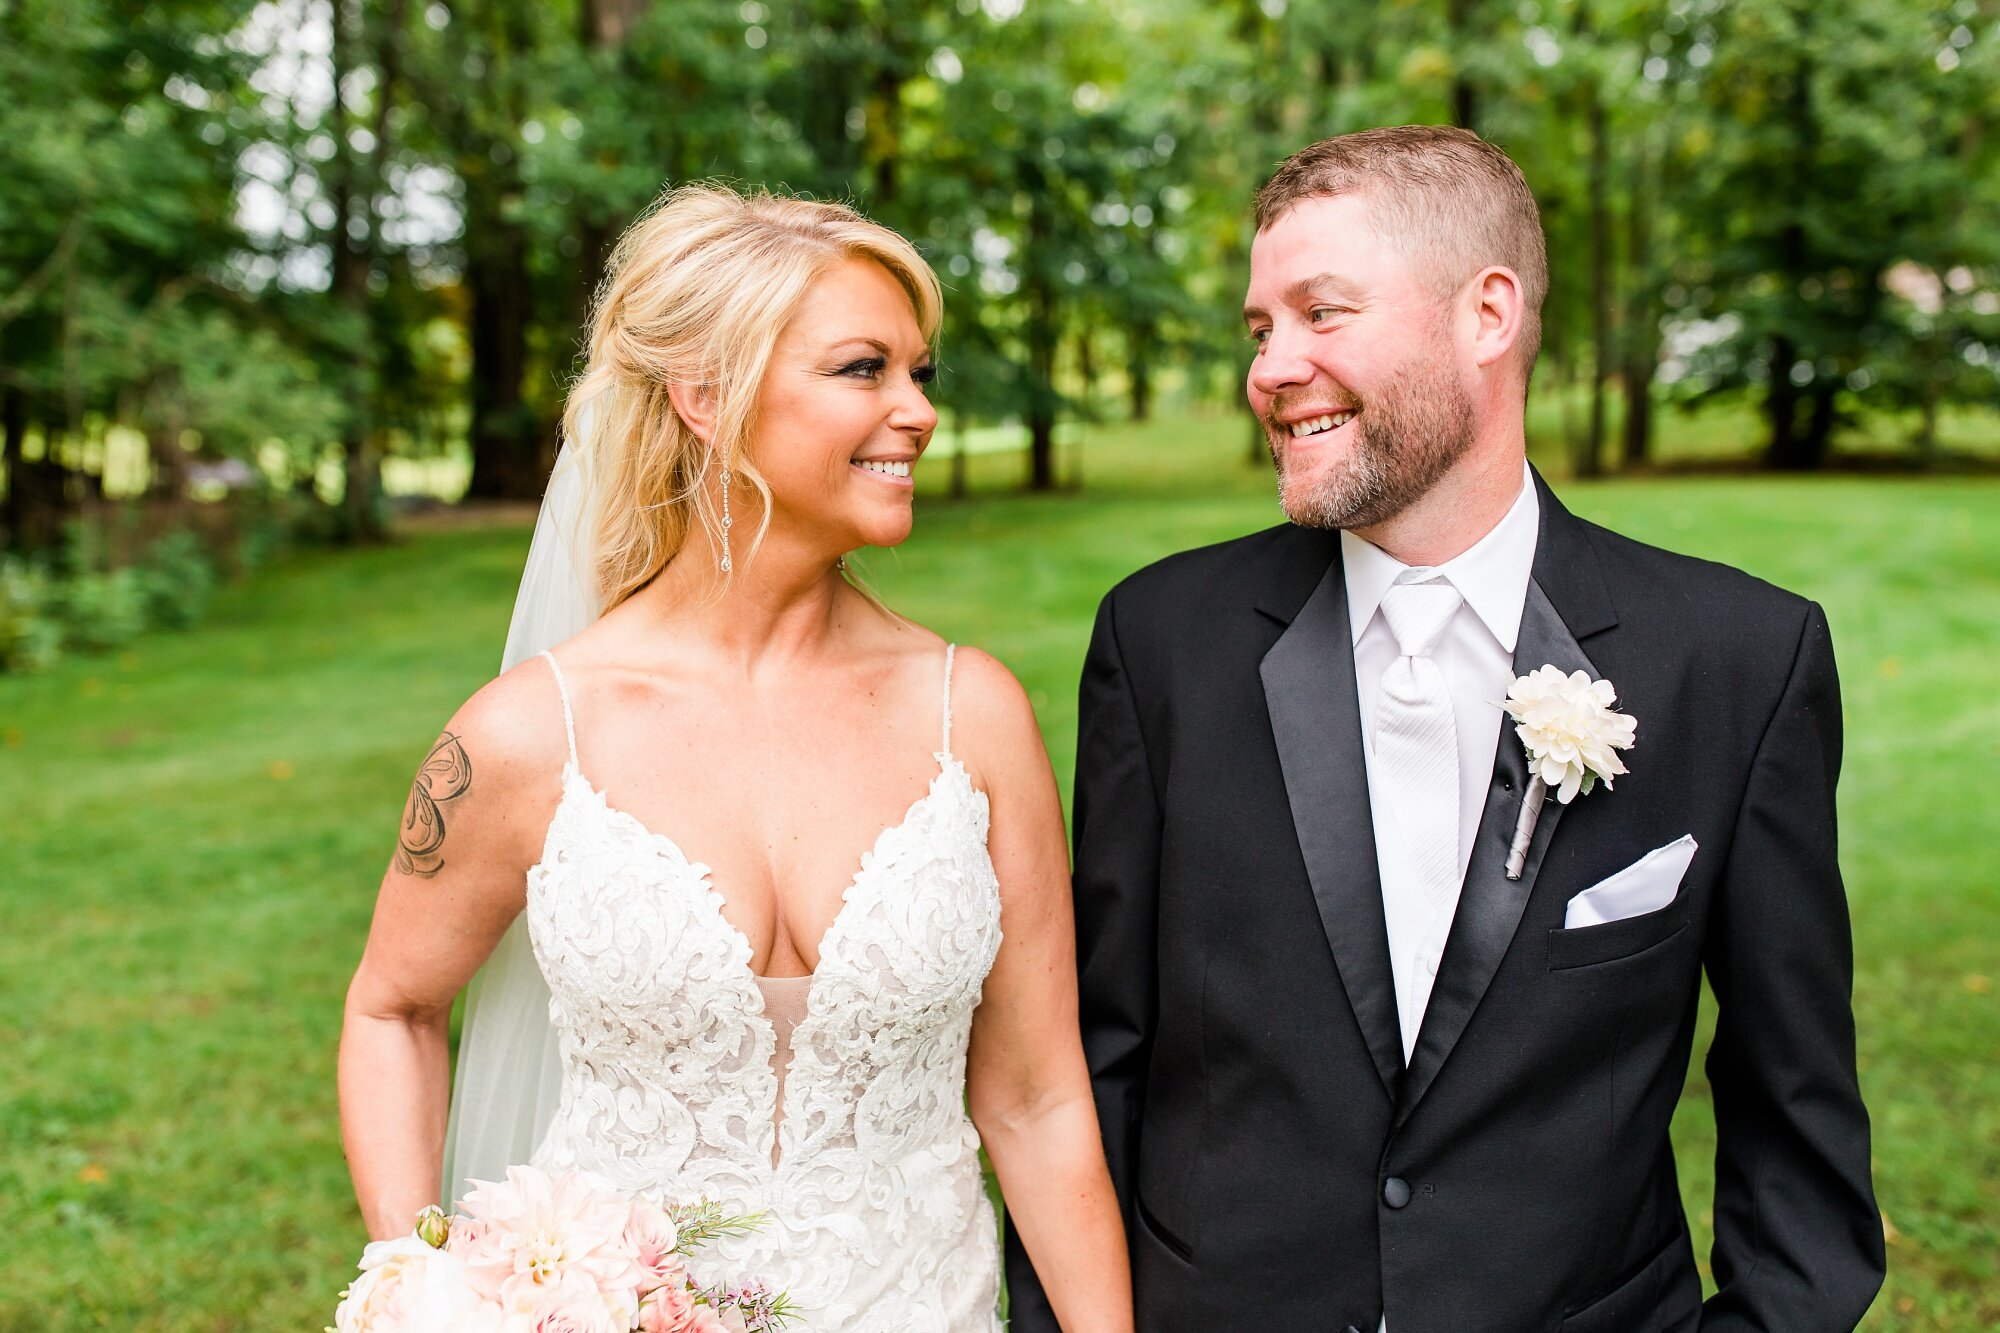 Amber Langerud Photography_Eagle Lake Rustic Styled Outdoor Wedding in Minnesota_6846.jpg